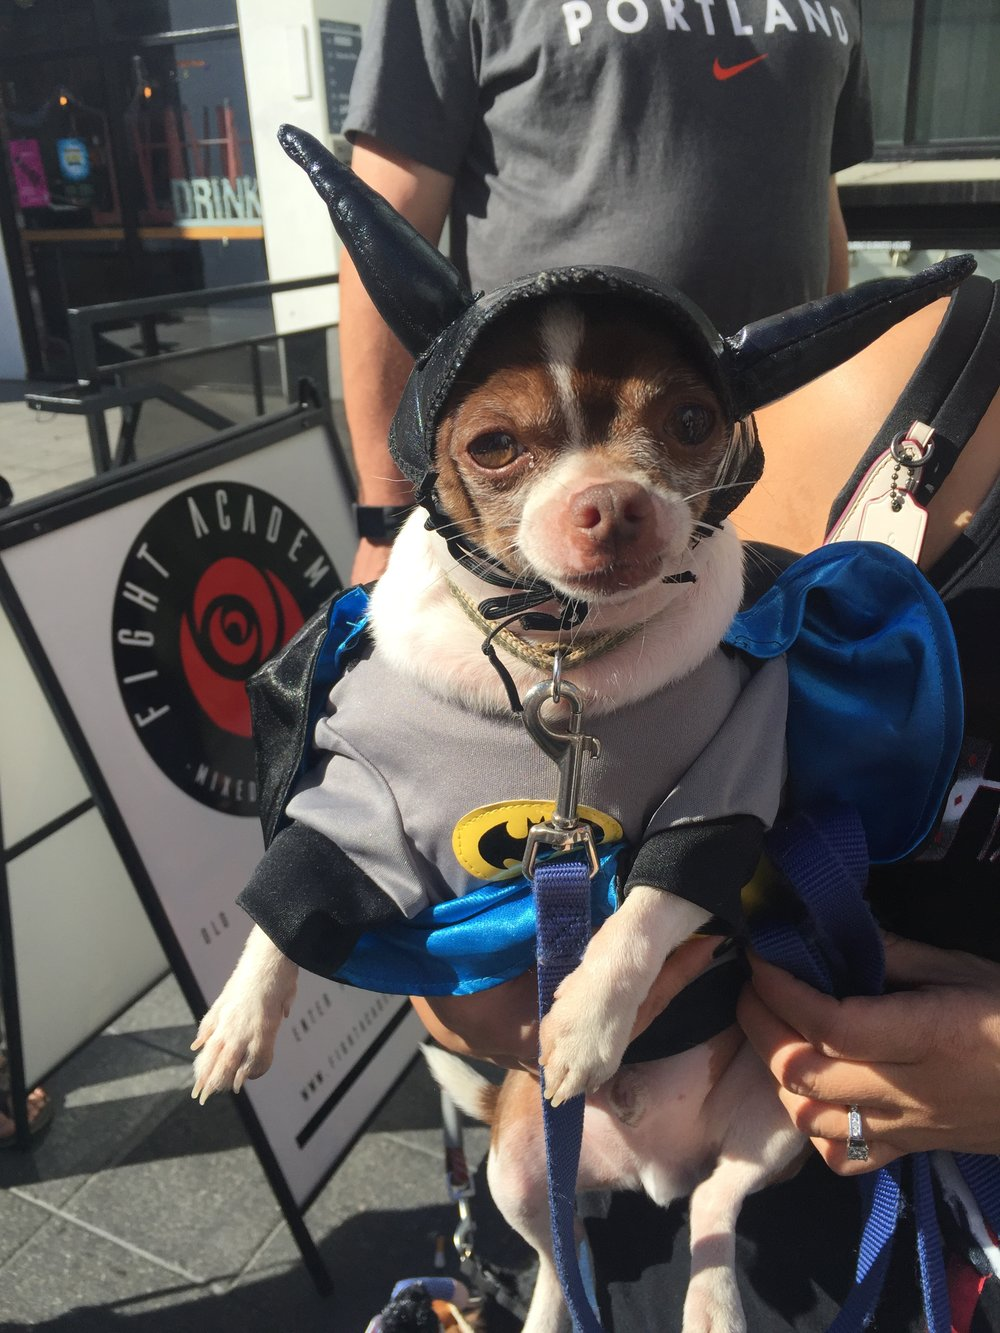 chihuahua batman halloween costume.jpg